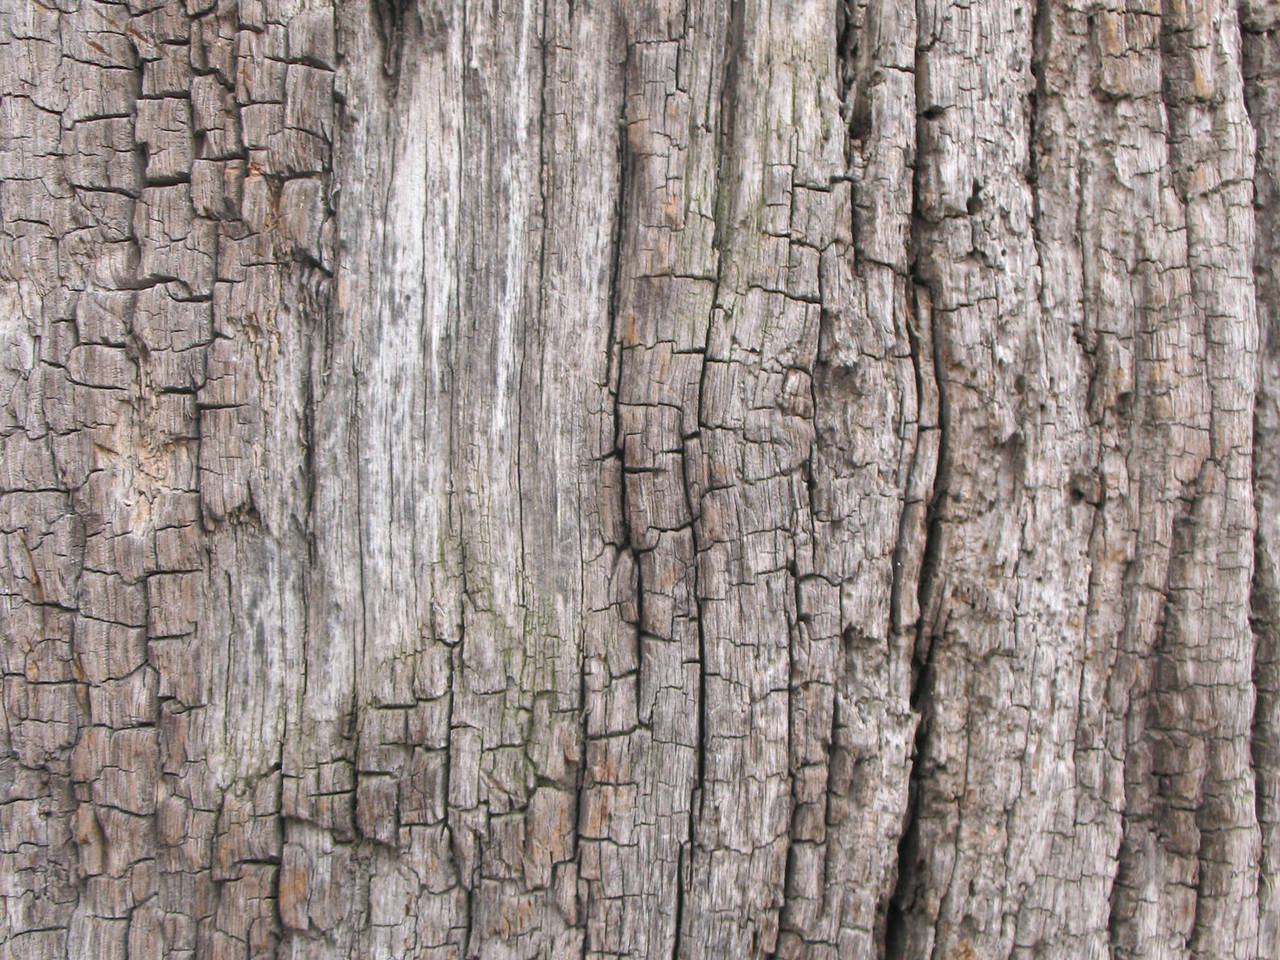 Old Wood texture 3 by Random-Acts-Stock